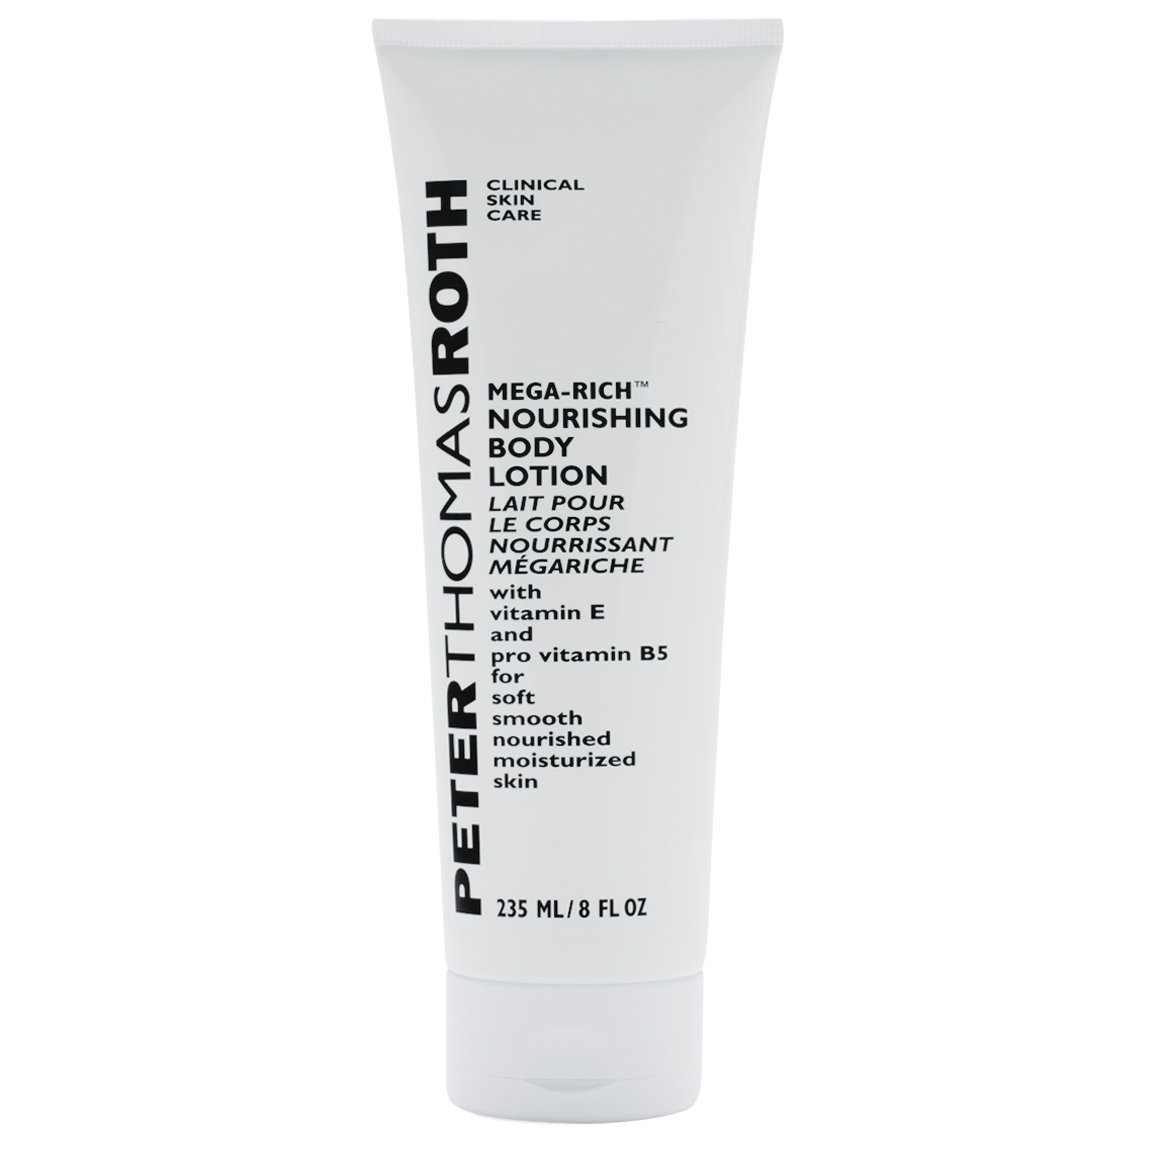 Peter Thomas Roth Mega-Rich Body Lotion product swatch.